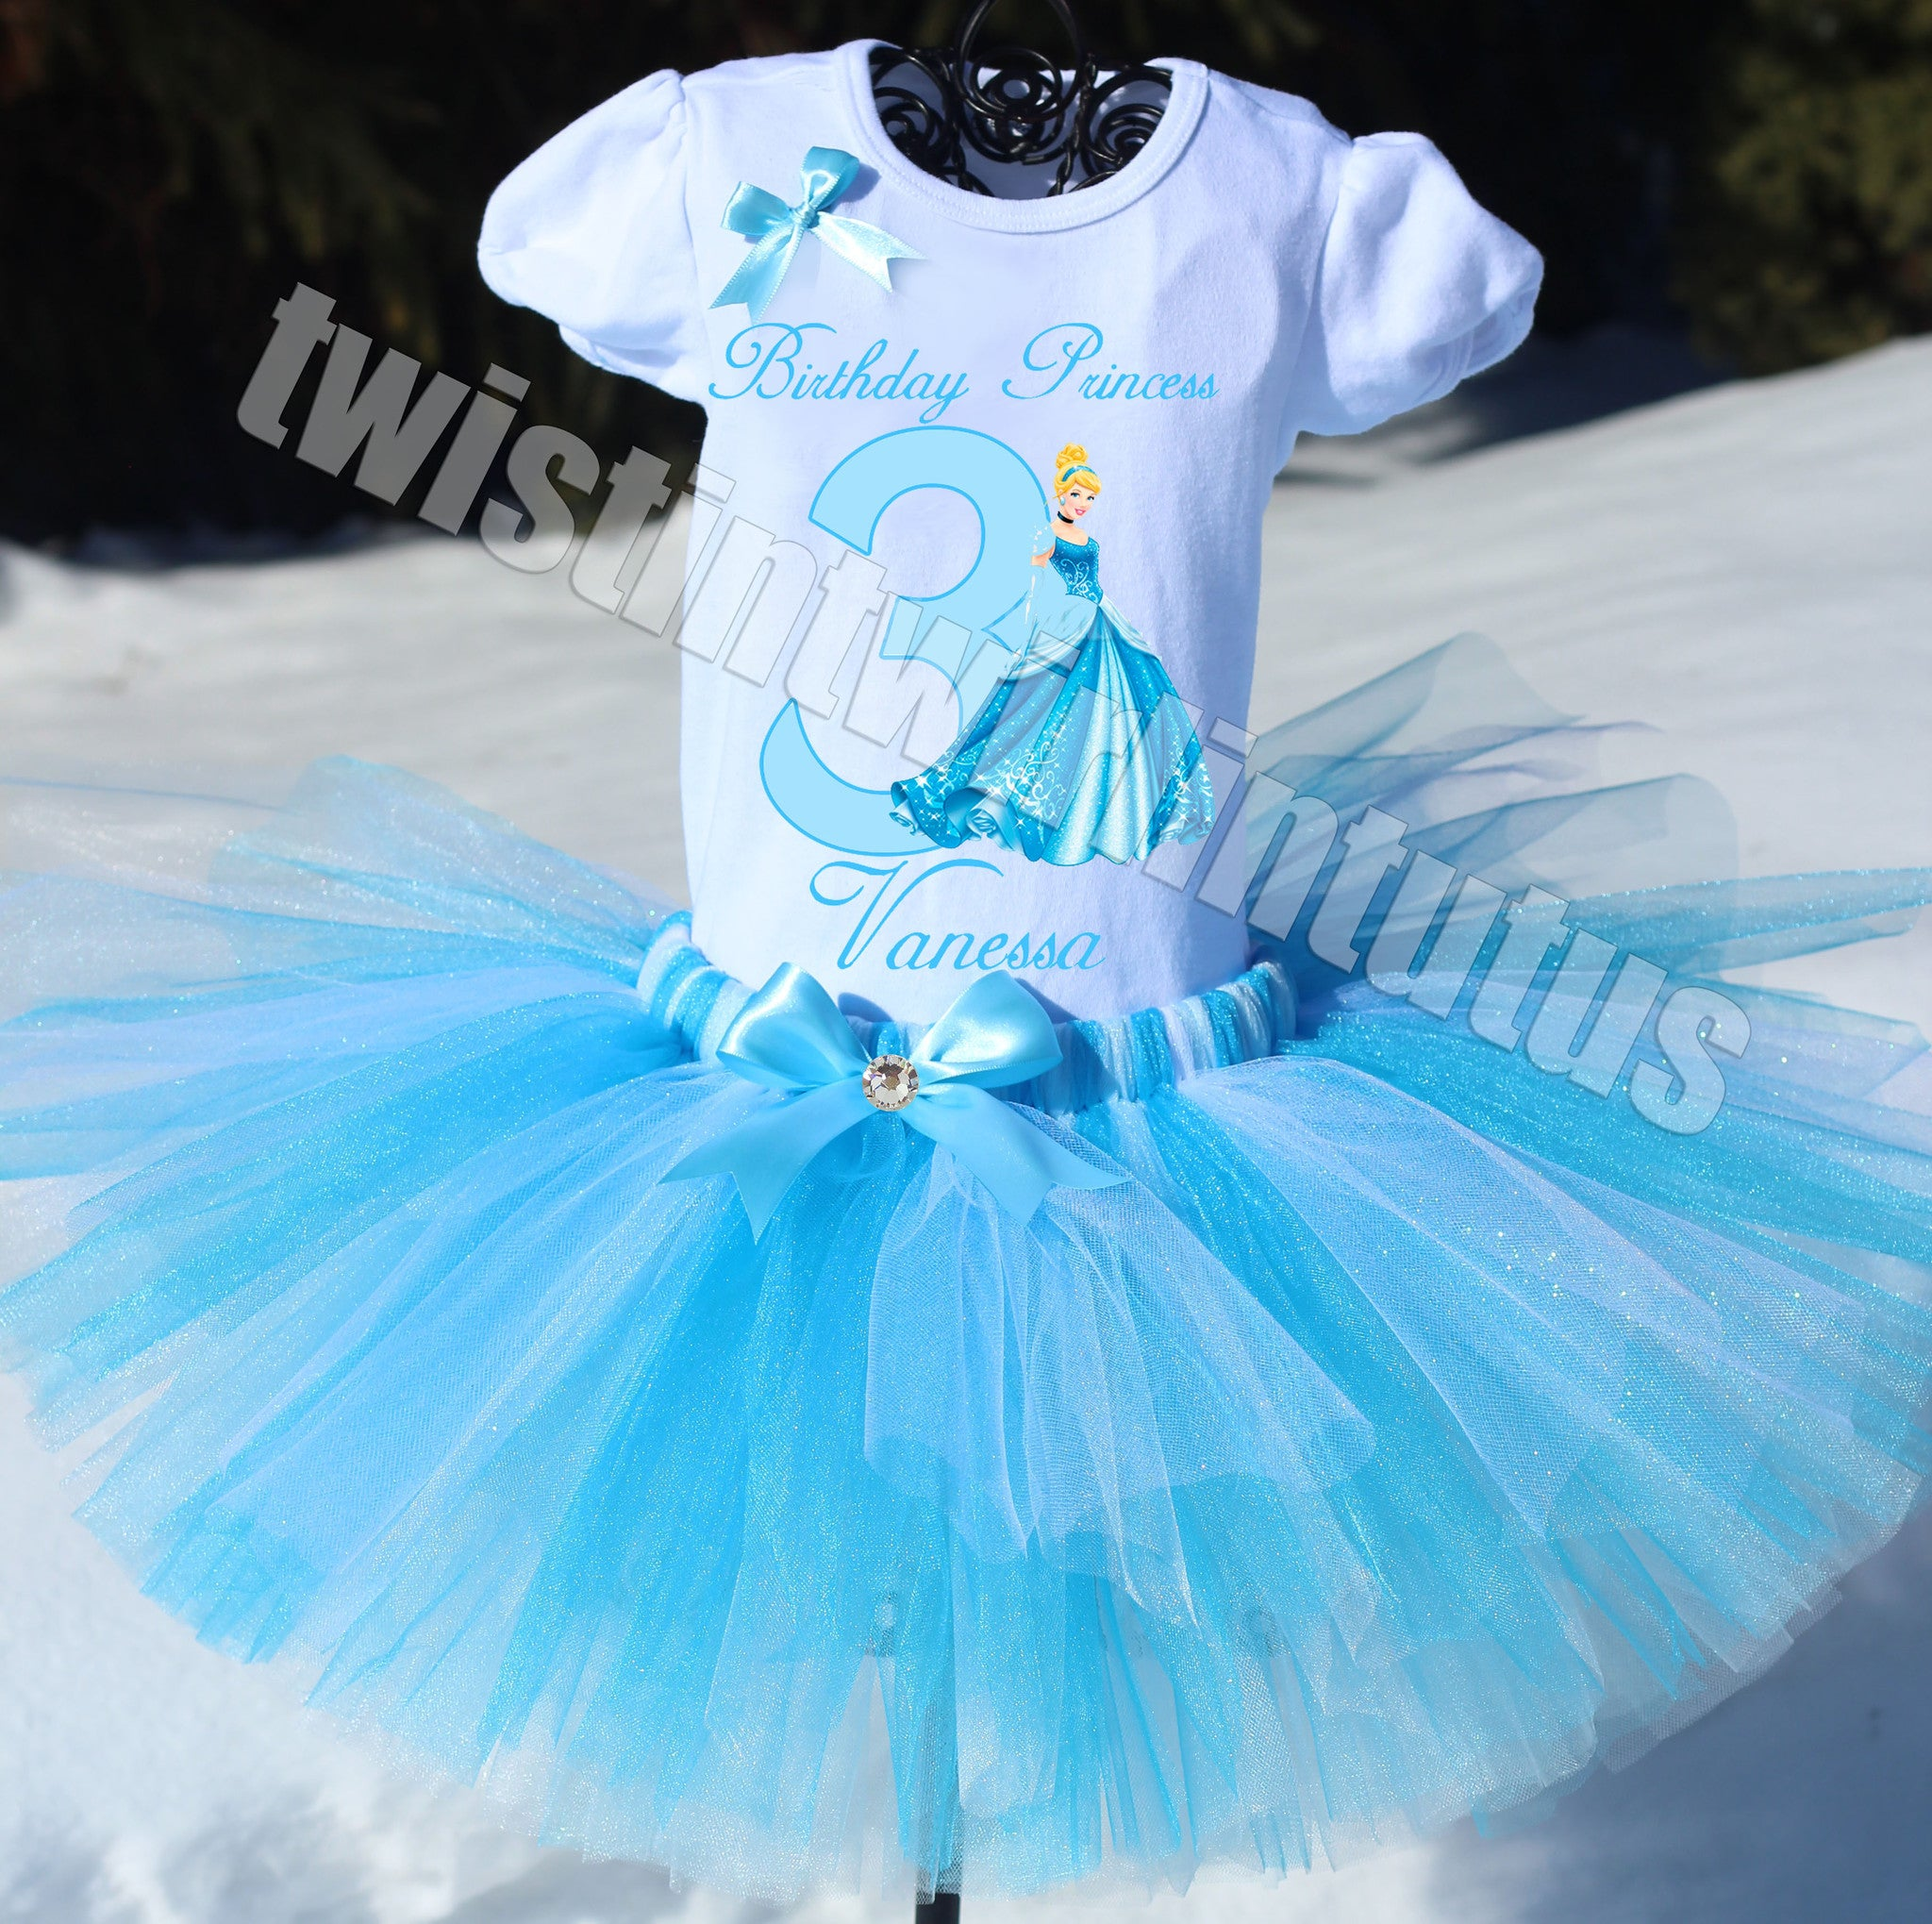 Cinderella Birthday Outfit